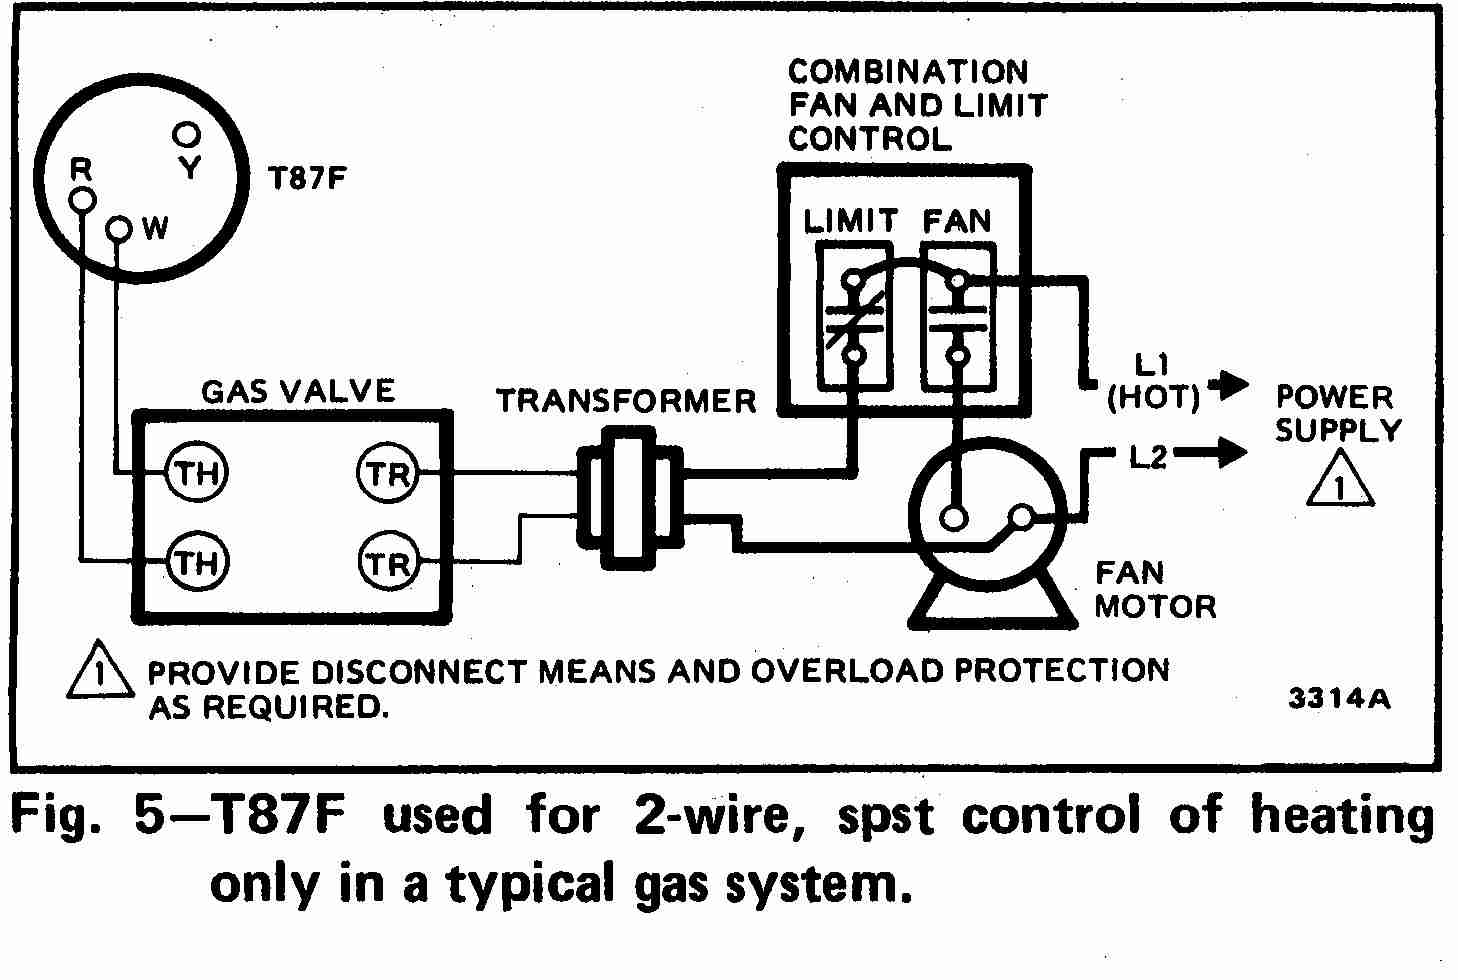 Electric Fireplace Insert Heater Wiring Diagram together with Clothes Dryer Repair 4 moreover Thermostat Diagrams in addition Electric AC Heater Controller Unit L42879 together with 534768 Carrier Air Handler Fan Will Not Shut Off. on furnace blower schematic